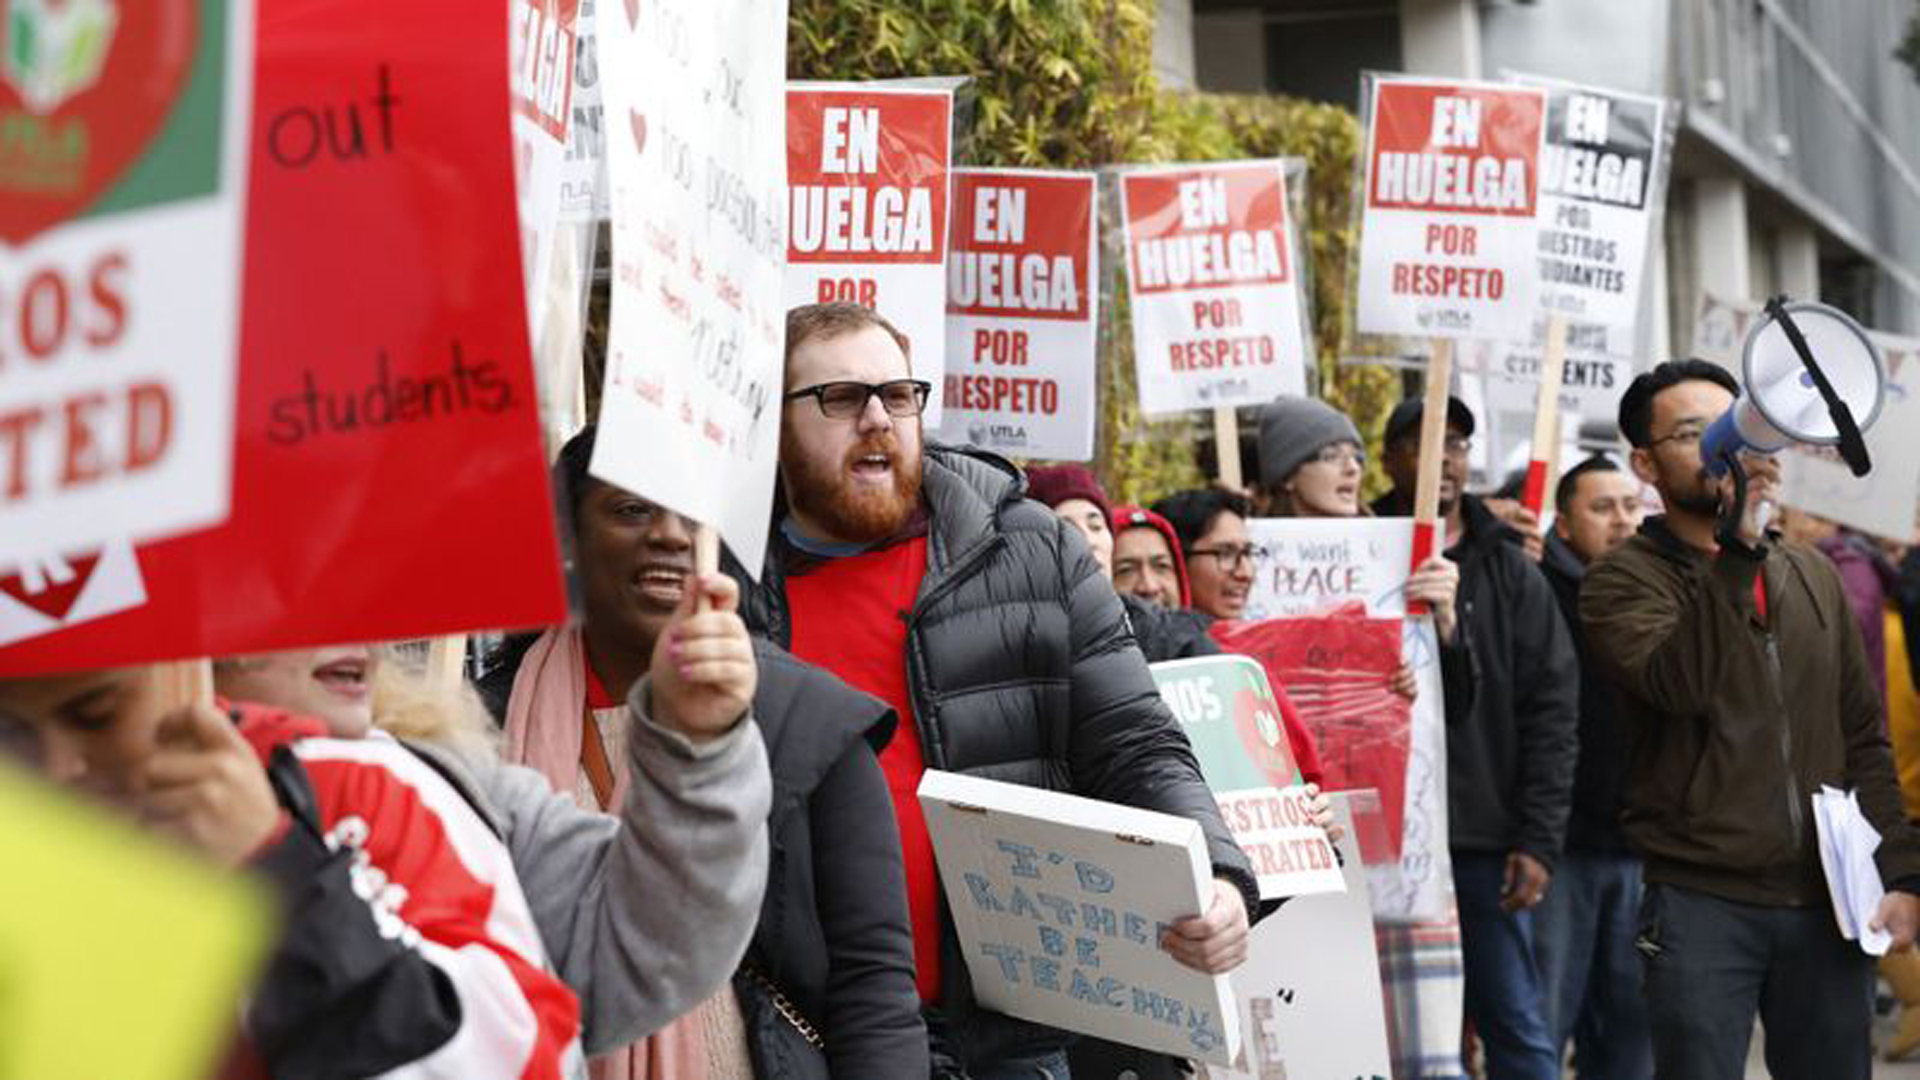 Teachers at the Accelerated Schools, a network of charter schools in South Los Angeles, picket on Jan. 15, 2019. (Credit: Al Seib / Los Angeles Times)